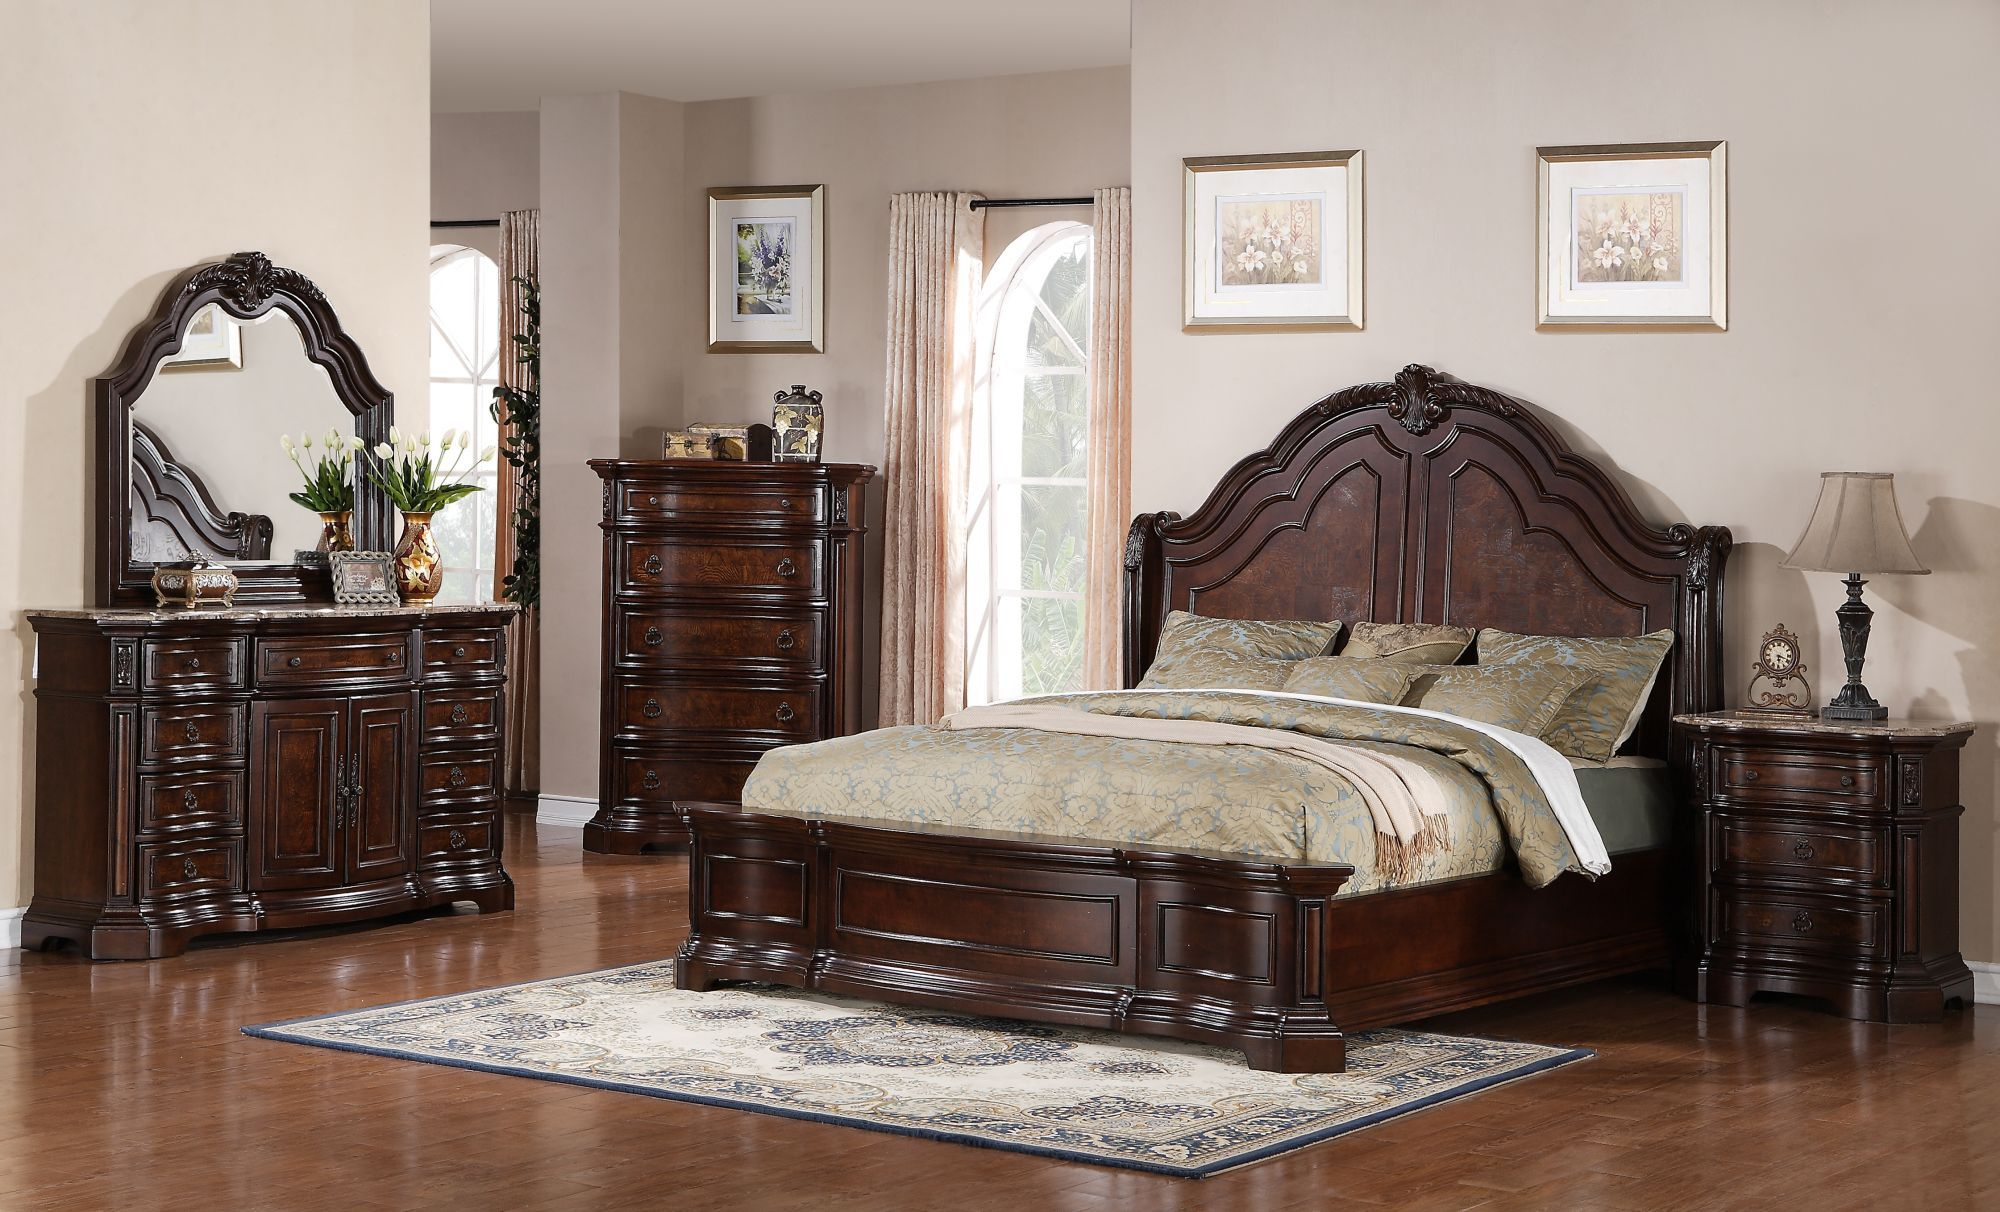 queen edington brothers furniture suite king lawrence bedroom samuel pin mathis